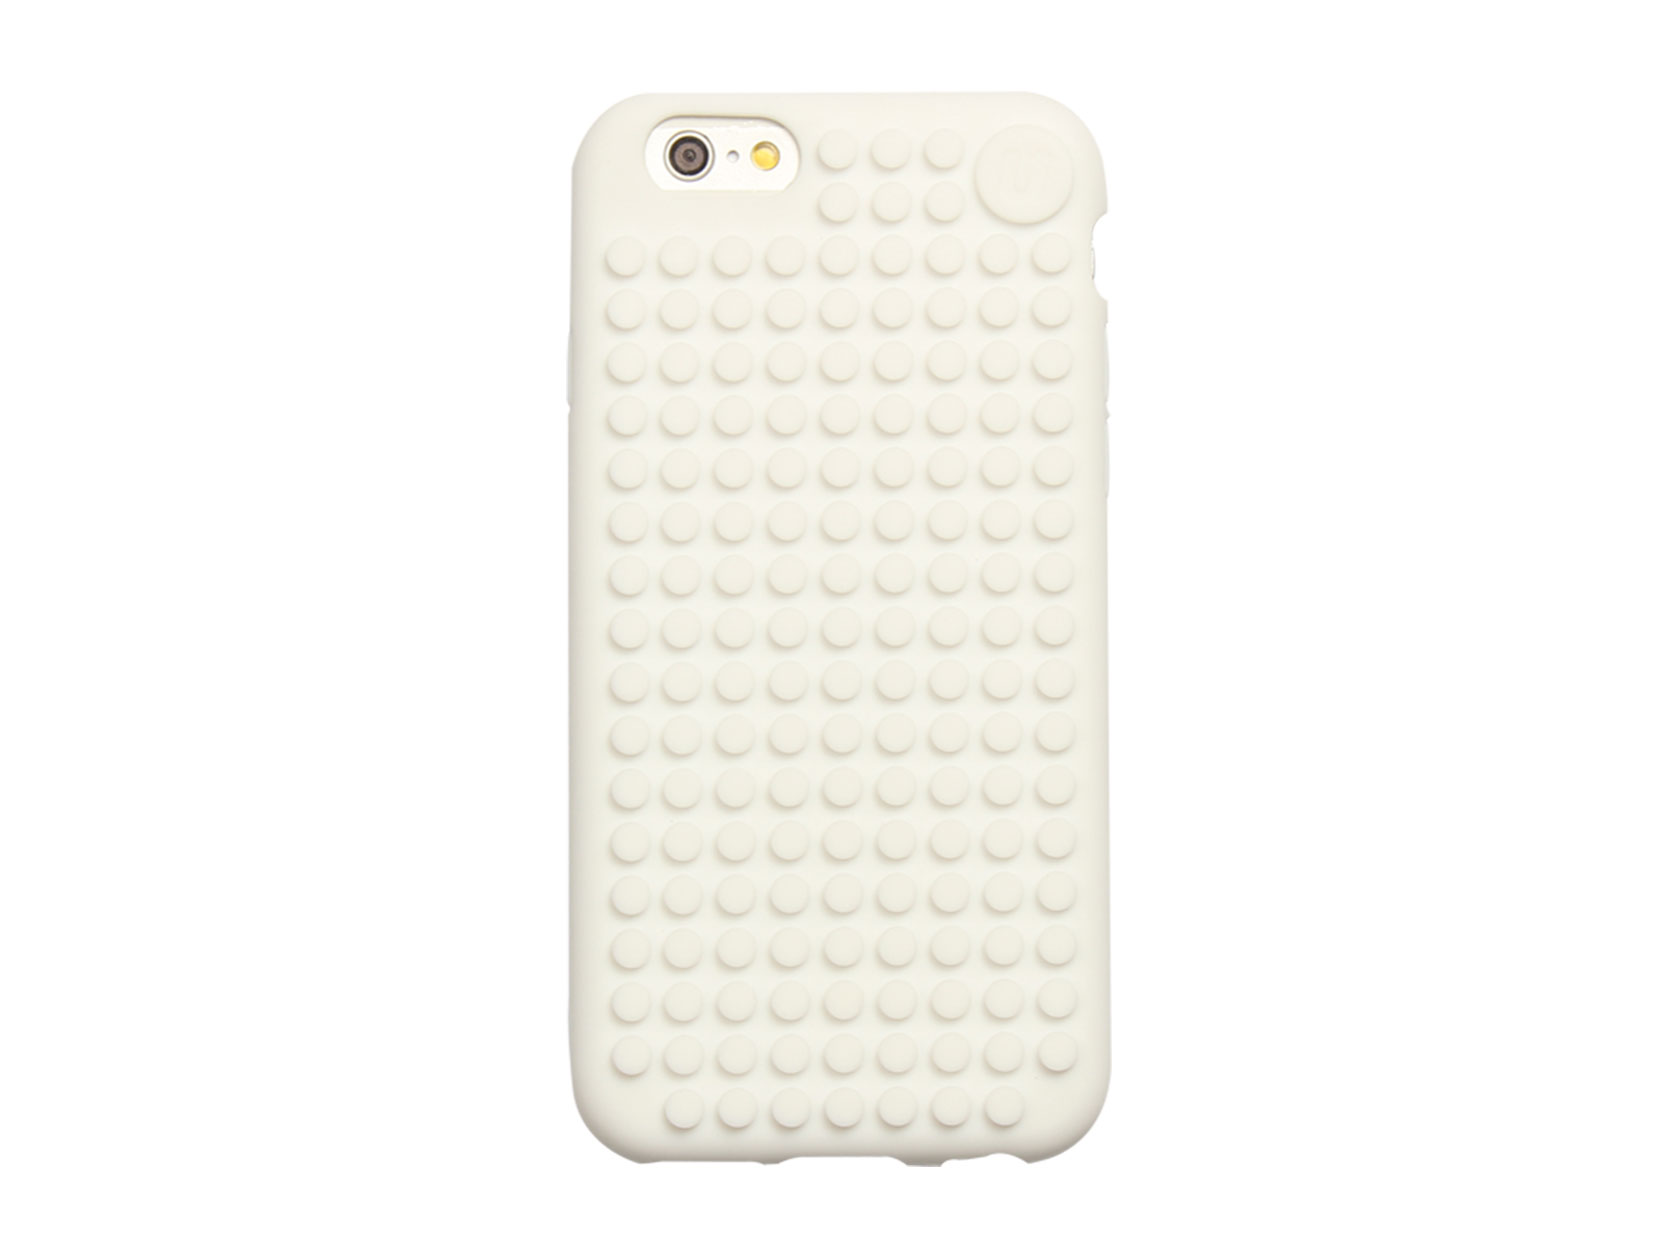 COVER P/CELULAR WY-C006 IPHONE 6/6S BLANCO